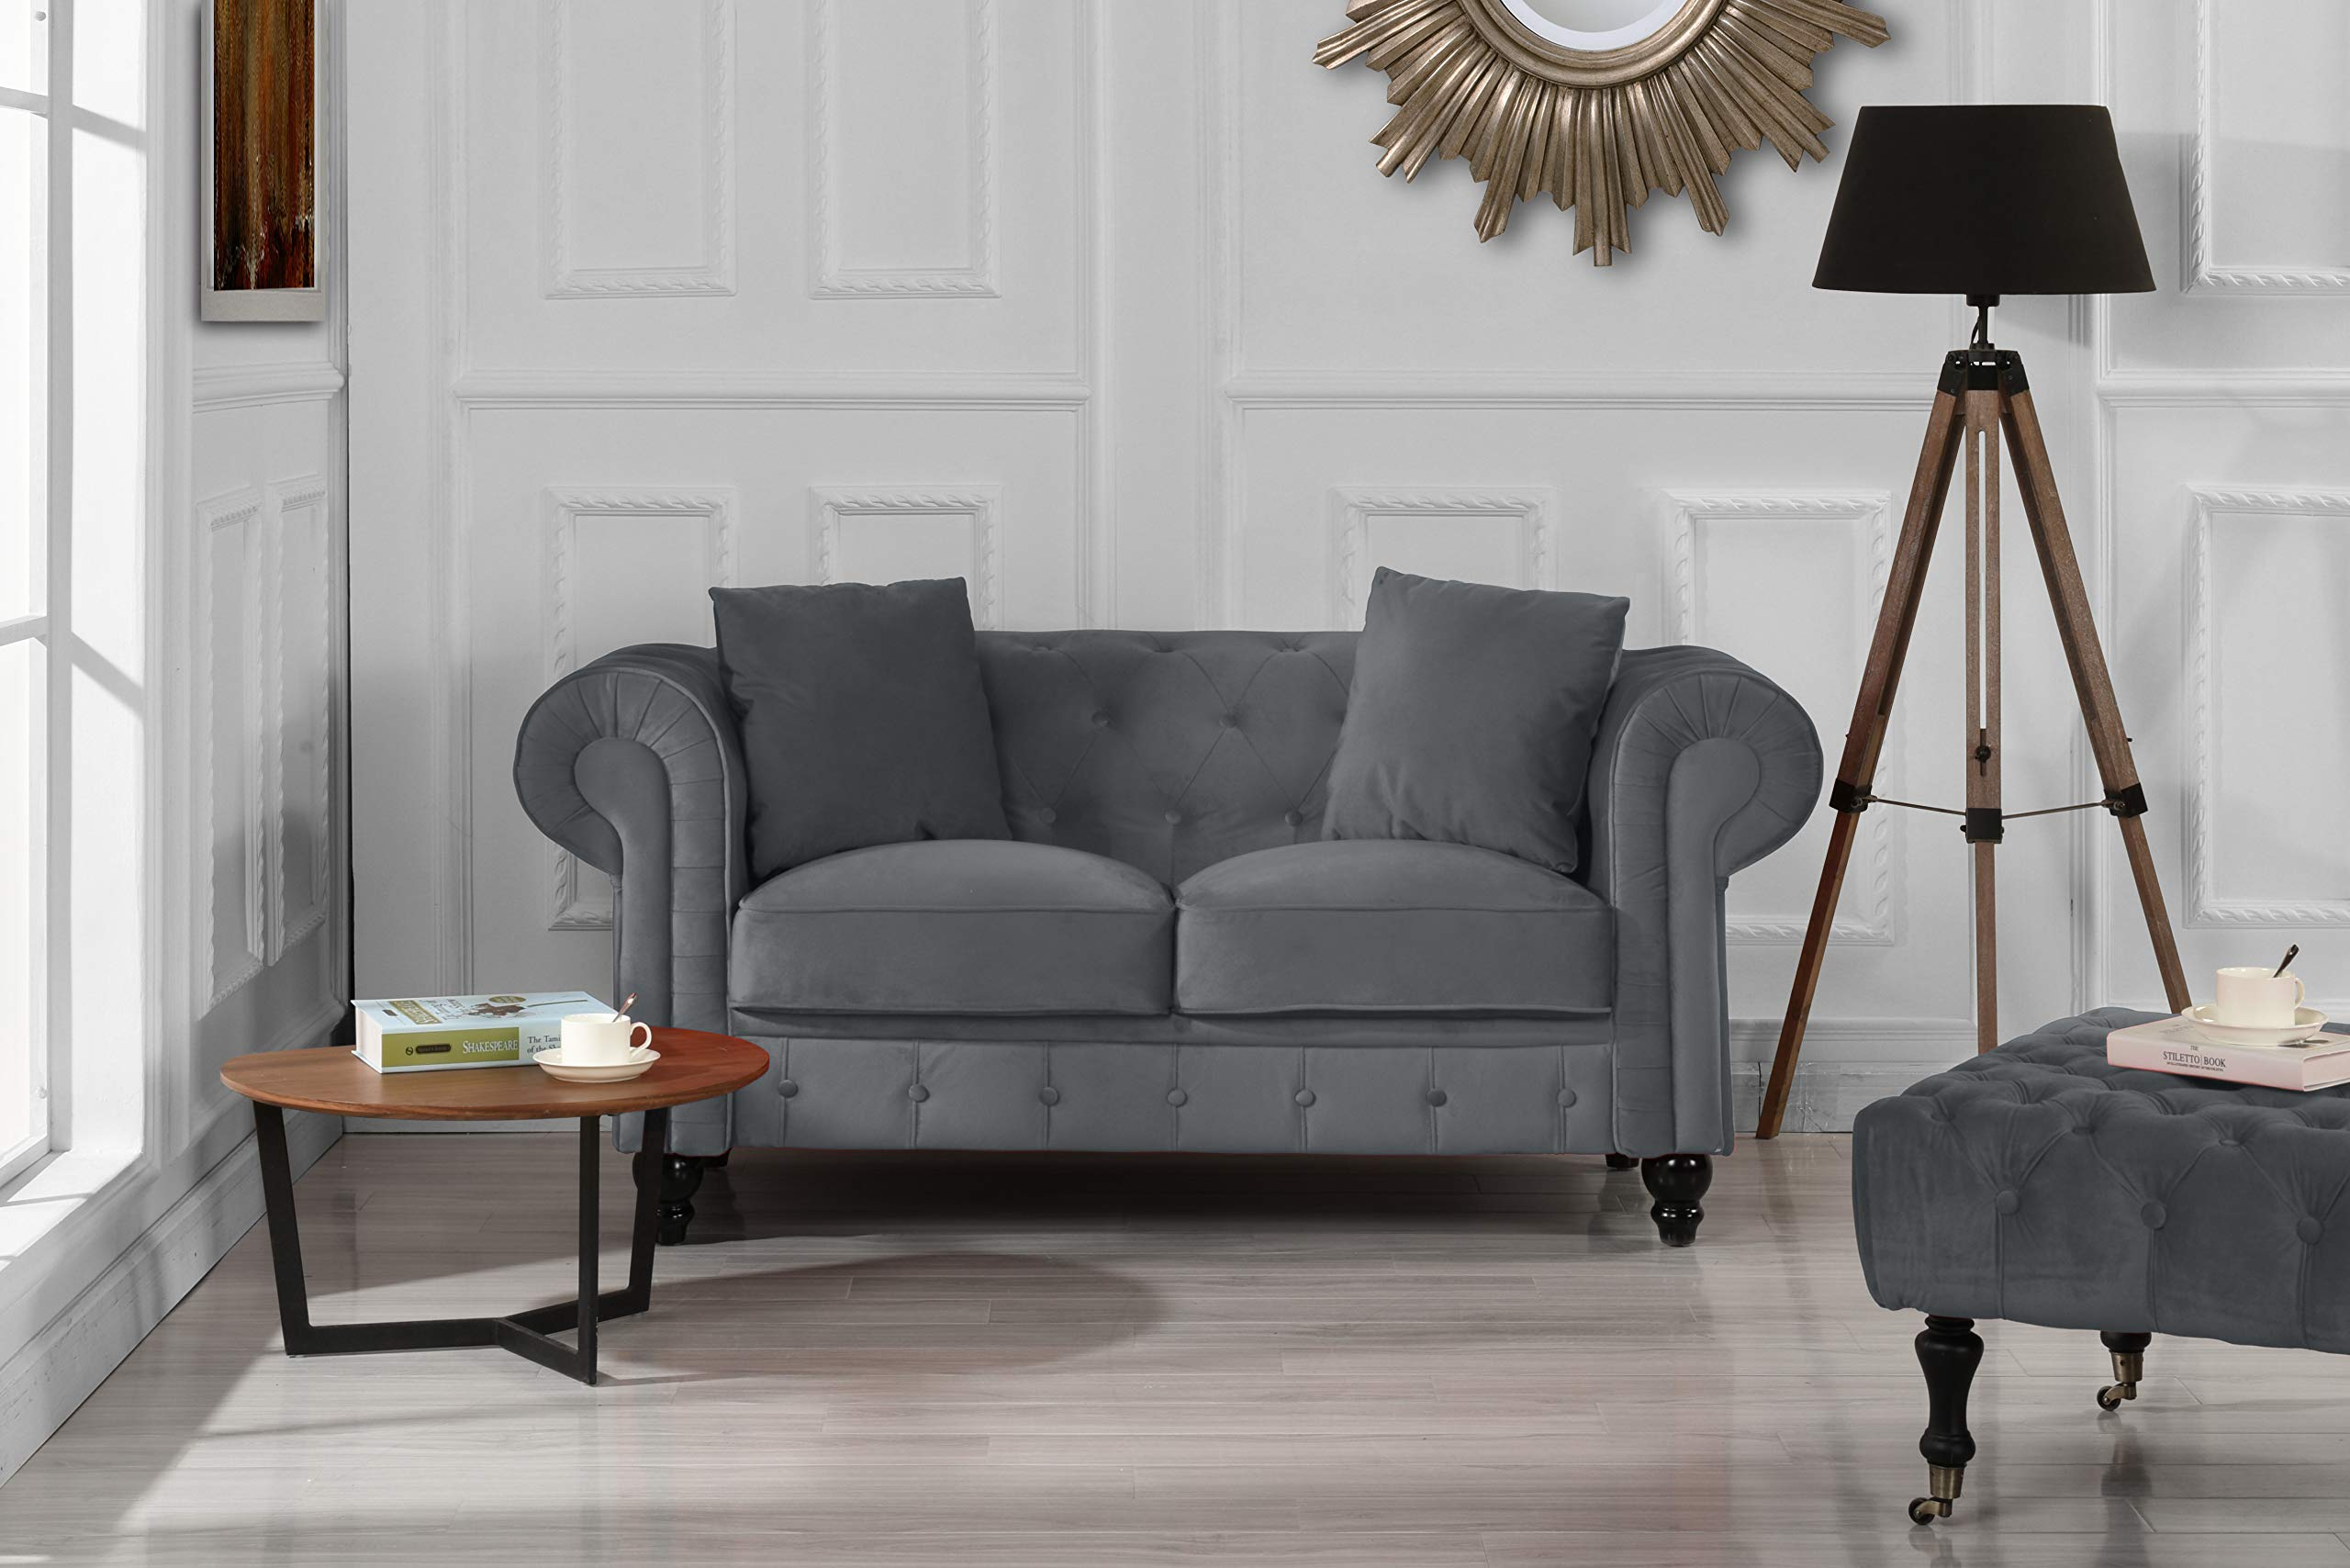 Furniture Classic Modern Scroll Arm Velvet Chesterfield Love Seat Sofa (Grey) by Divano Roma